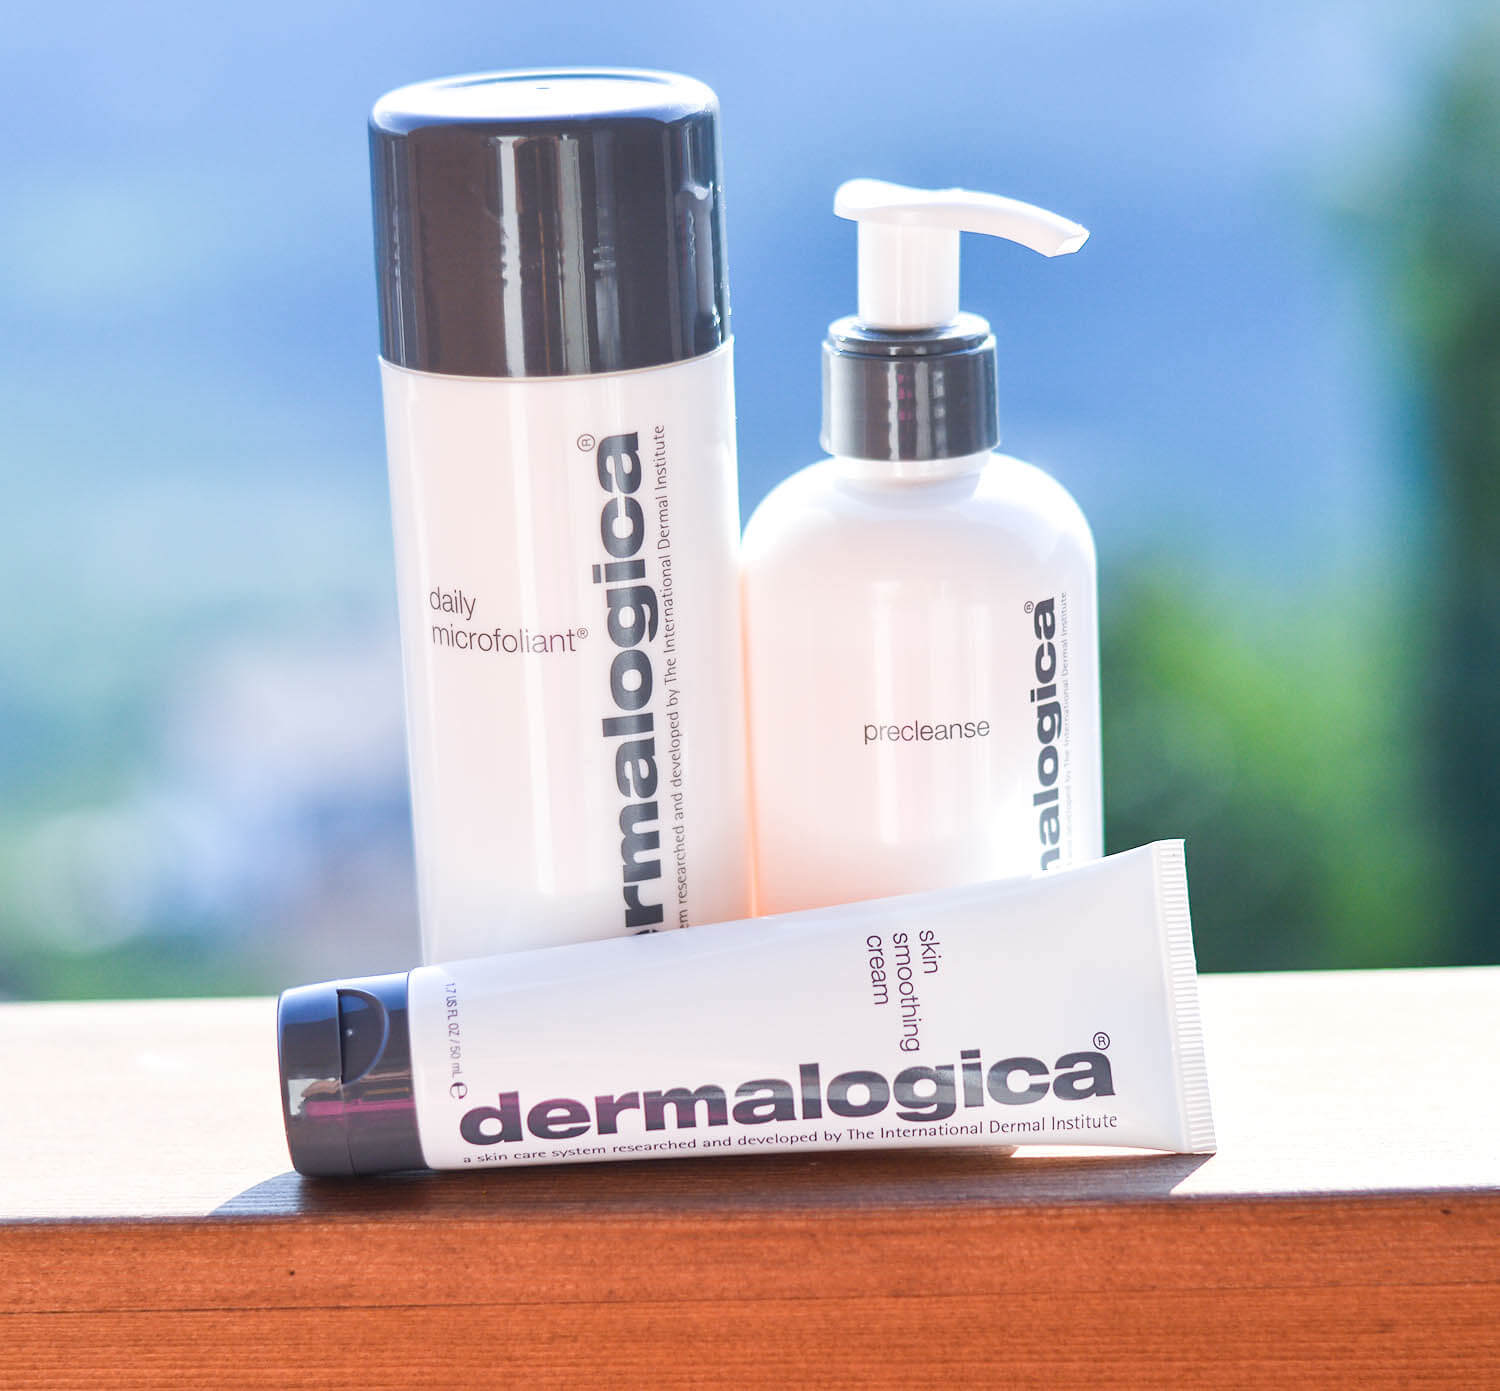 kationette-lifestyleblog-Beauty-Skincare-Routine-with-Dermalogica-peeling-cleansing-moisturizing